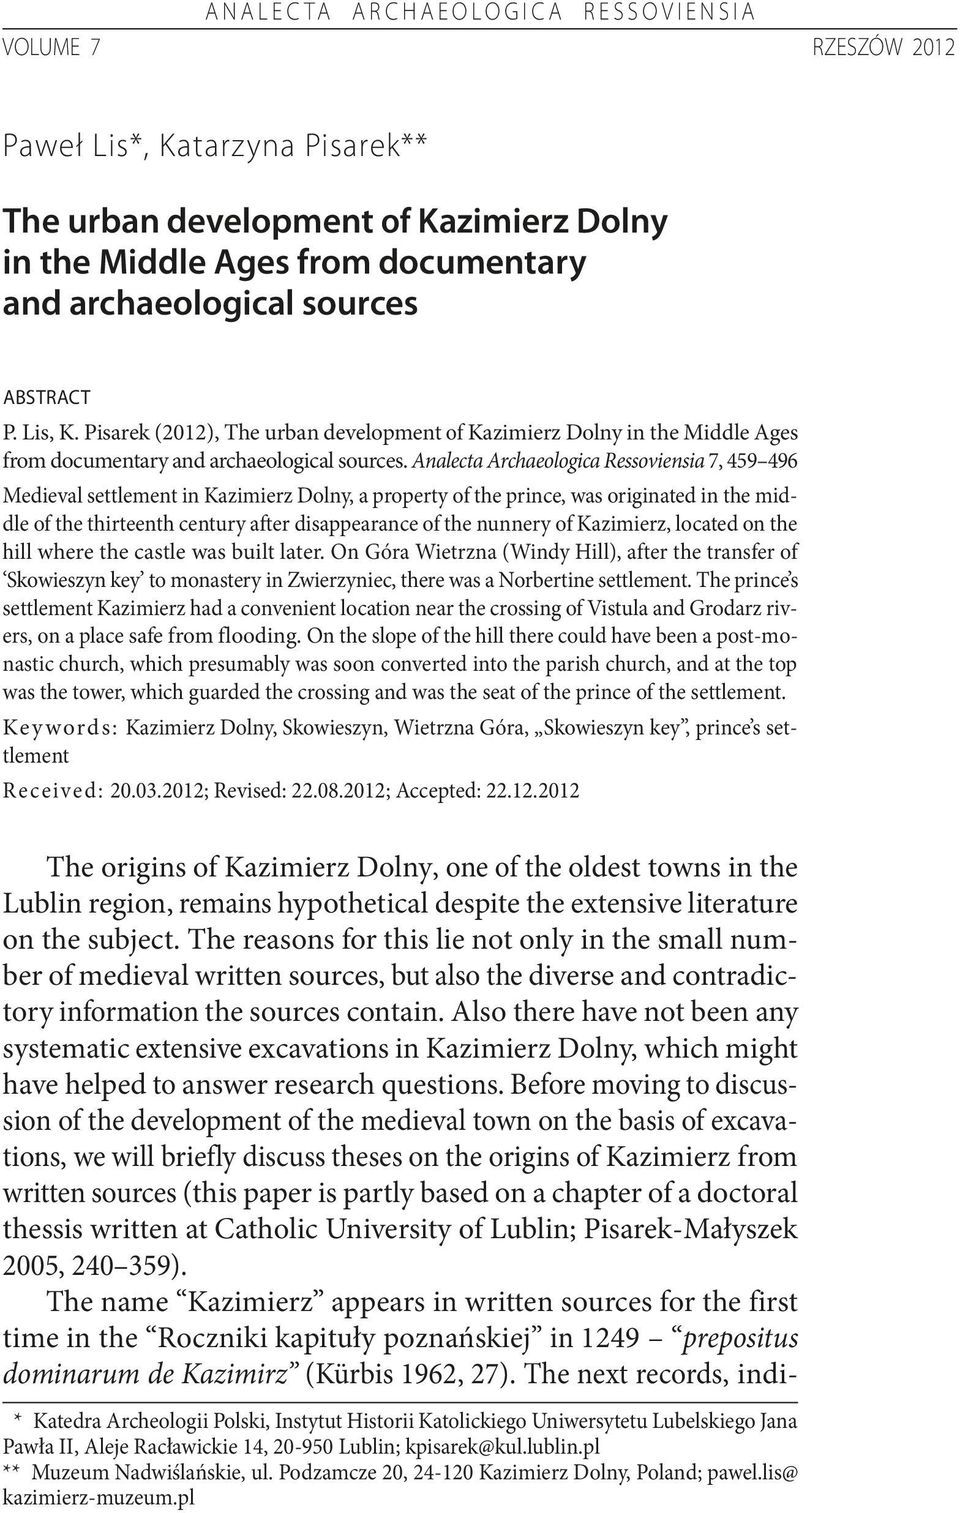 Analecta Archaeologica Ressoviensia 7, 459 496 Medieval settlement in Kazimierz Dolny, a property of the prince, was originated in the middle of the thirteenth century after disappearance of the